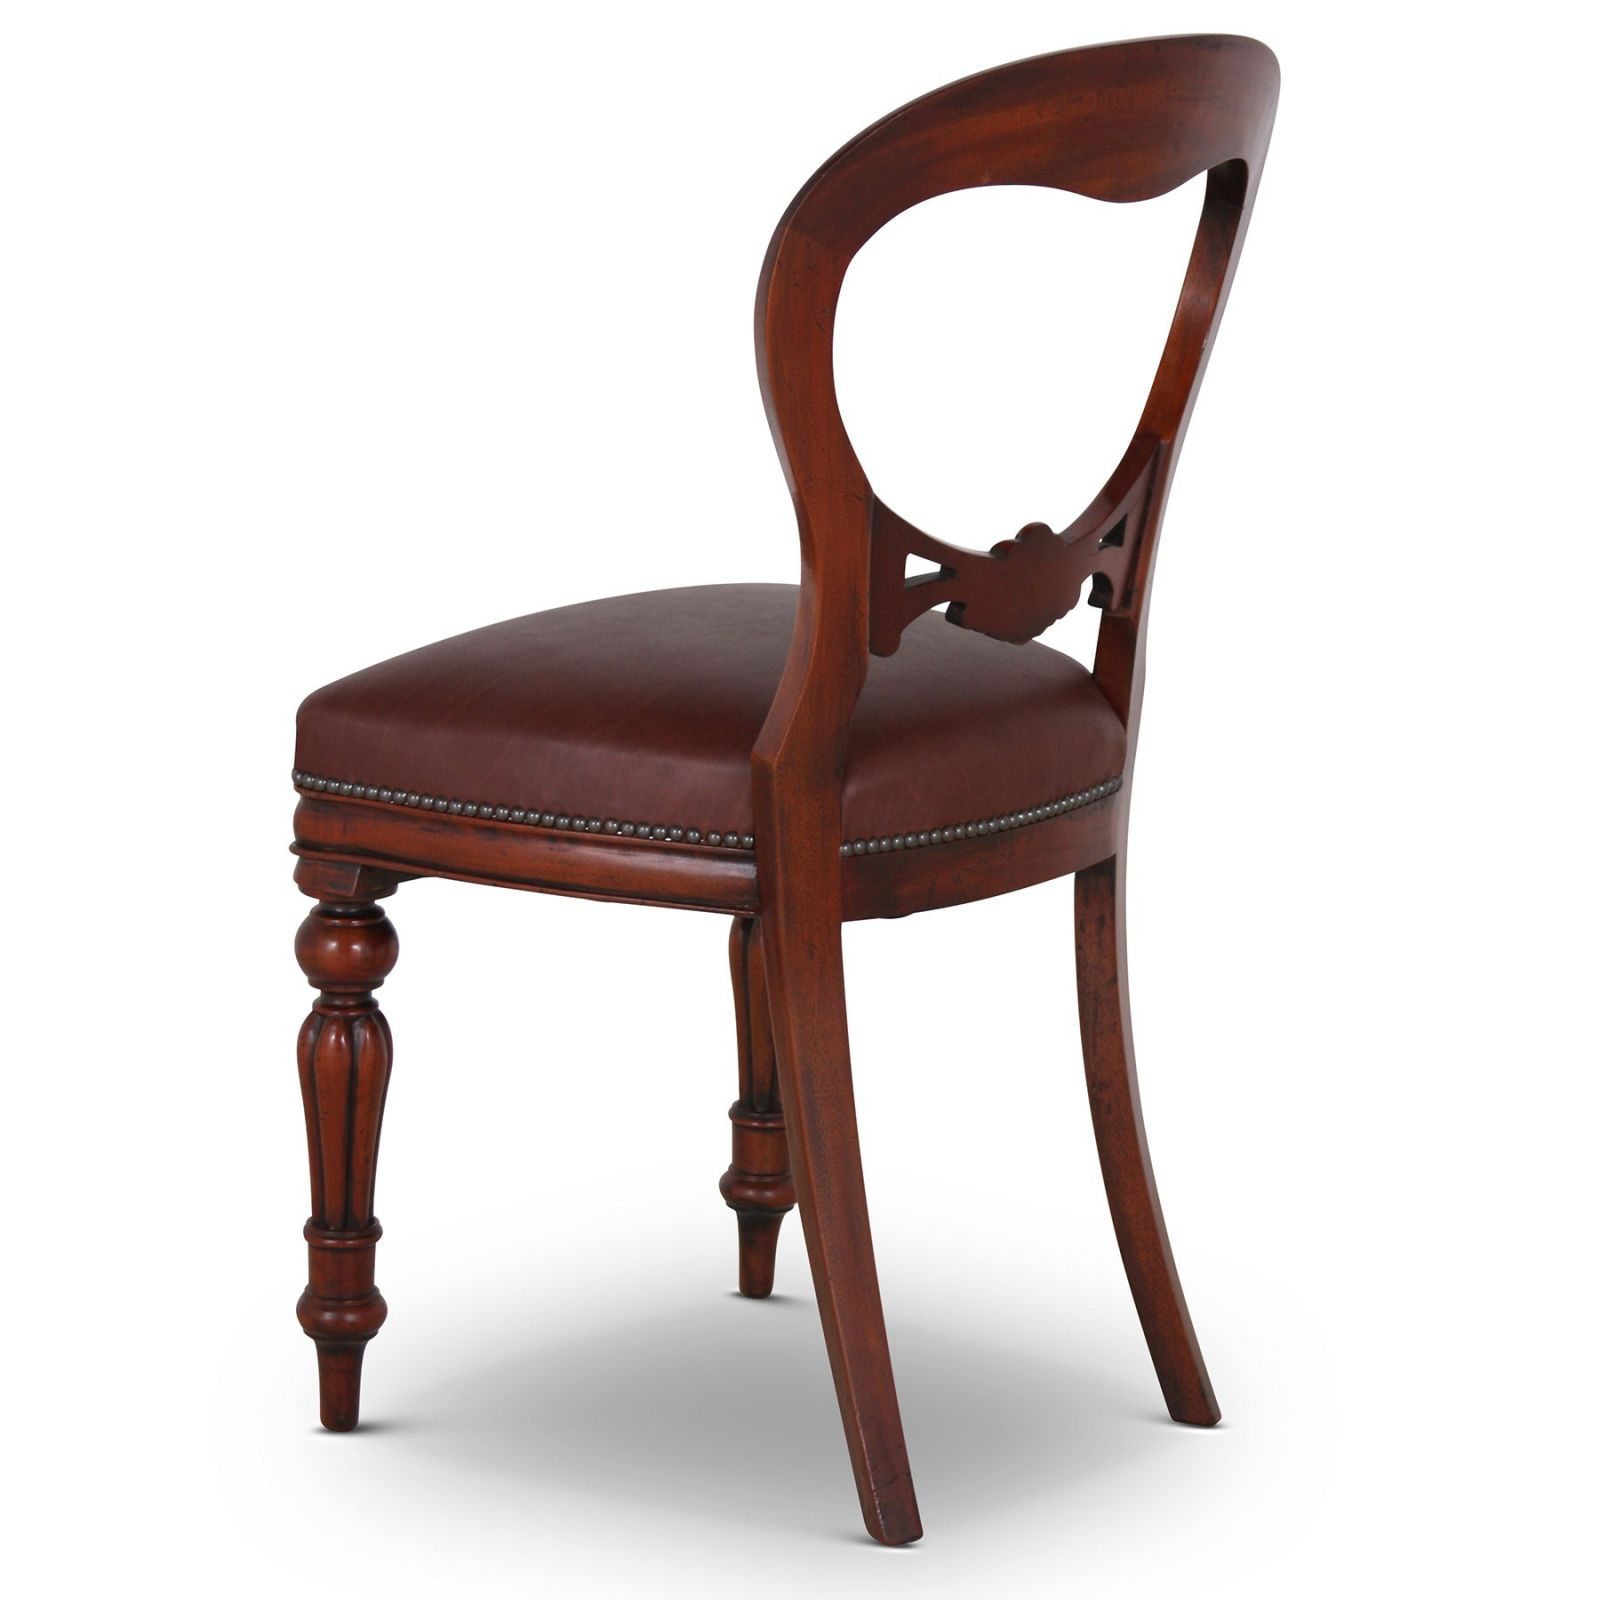 Victorian style balloon back dining chair with brown leather seat